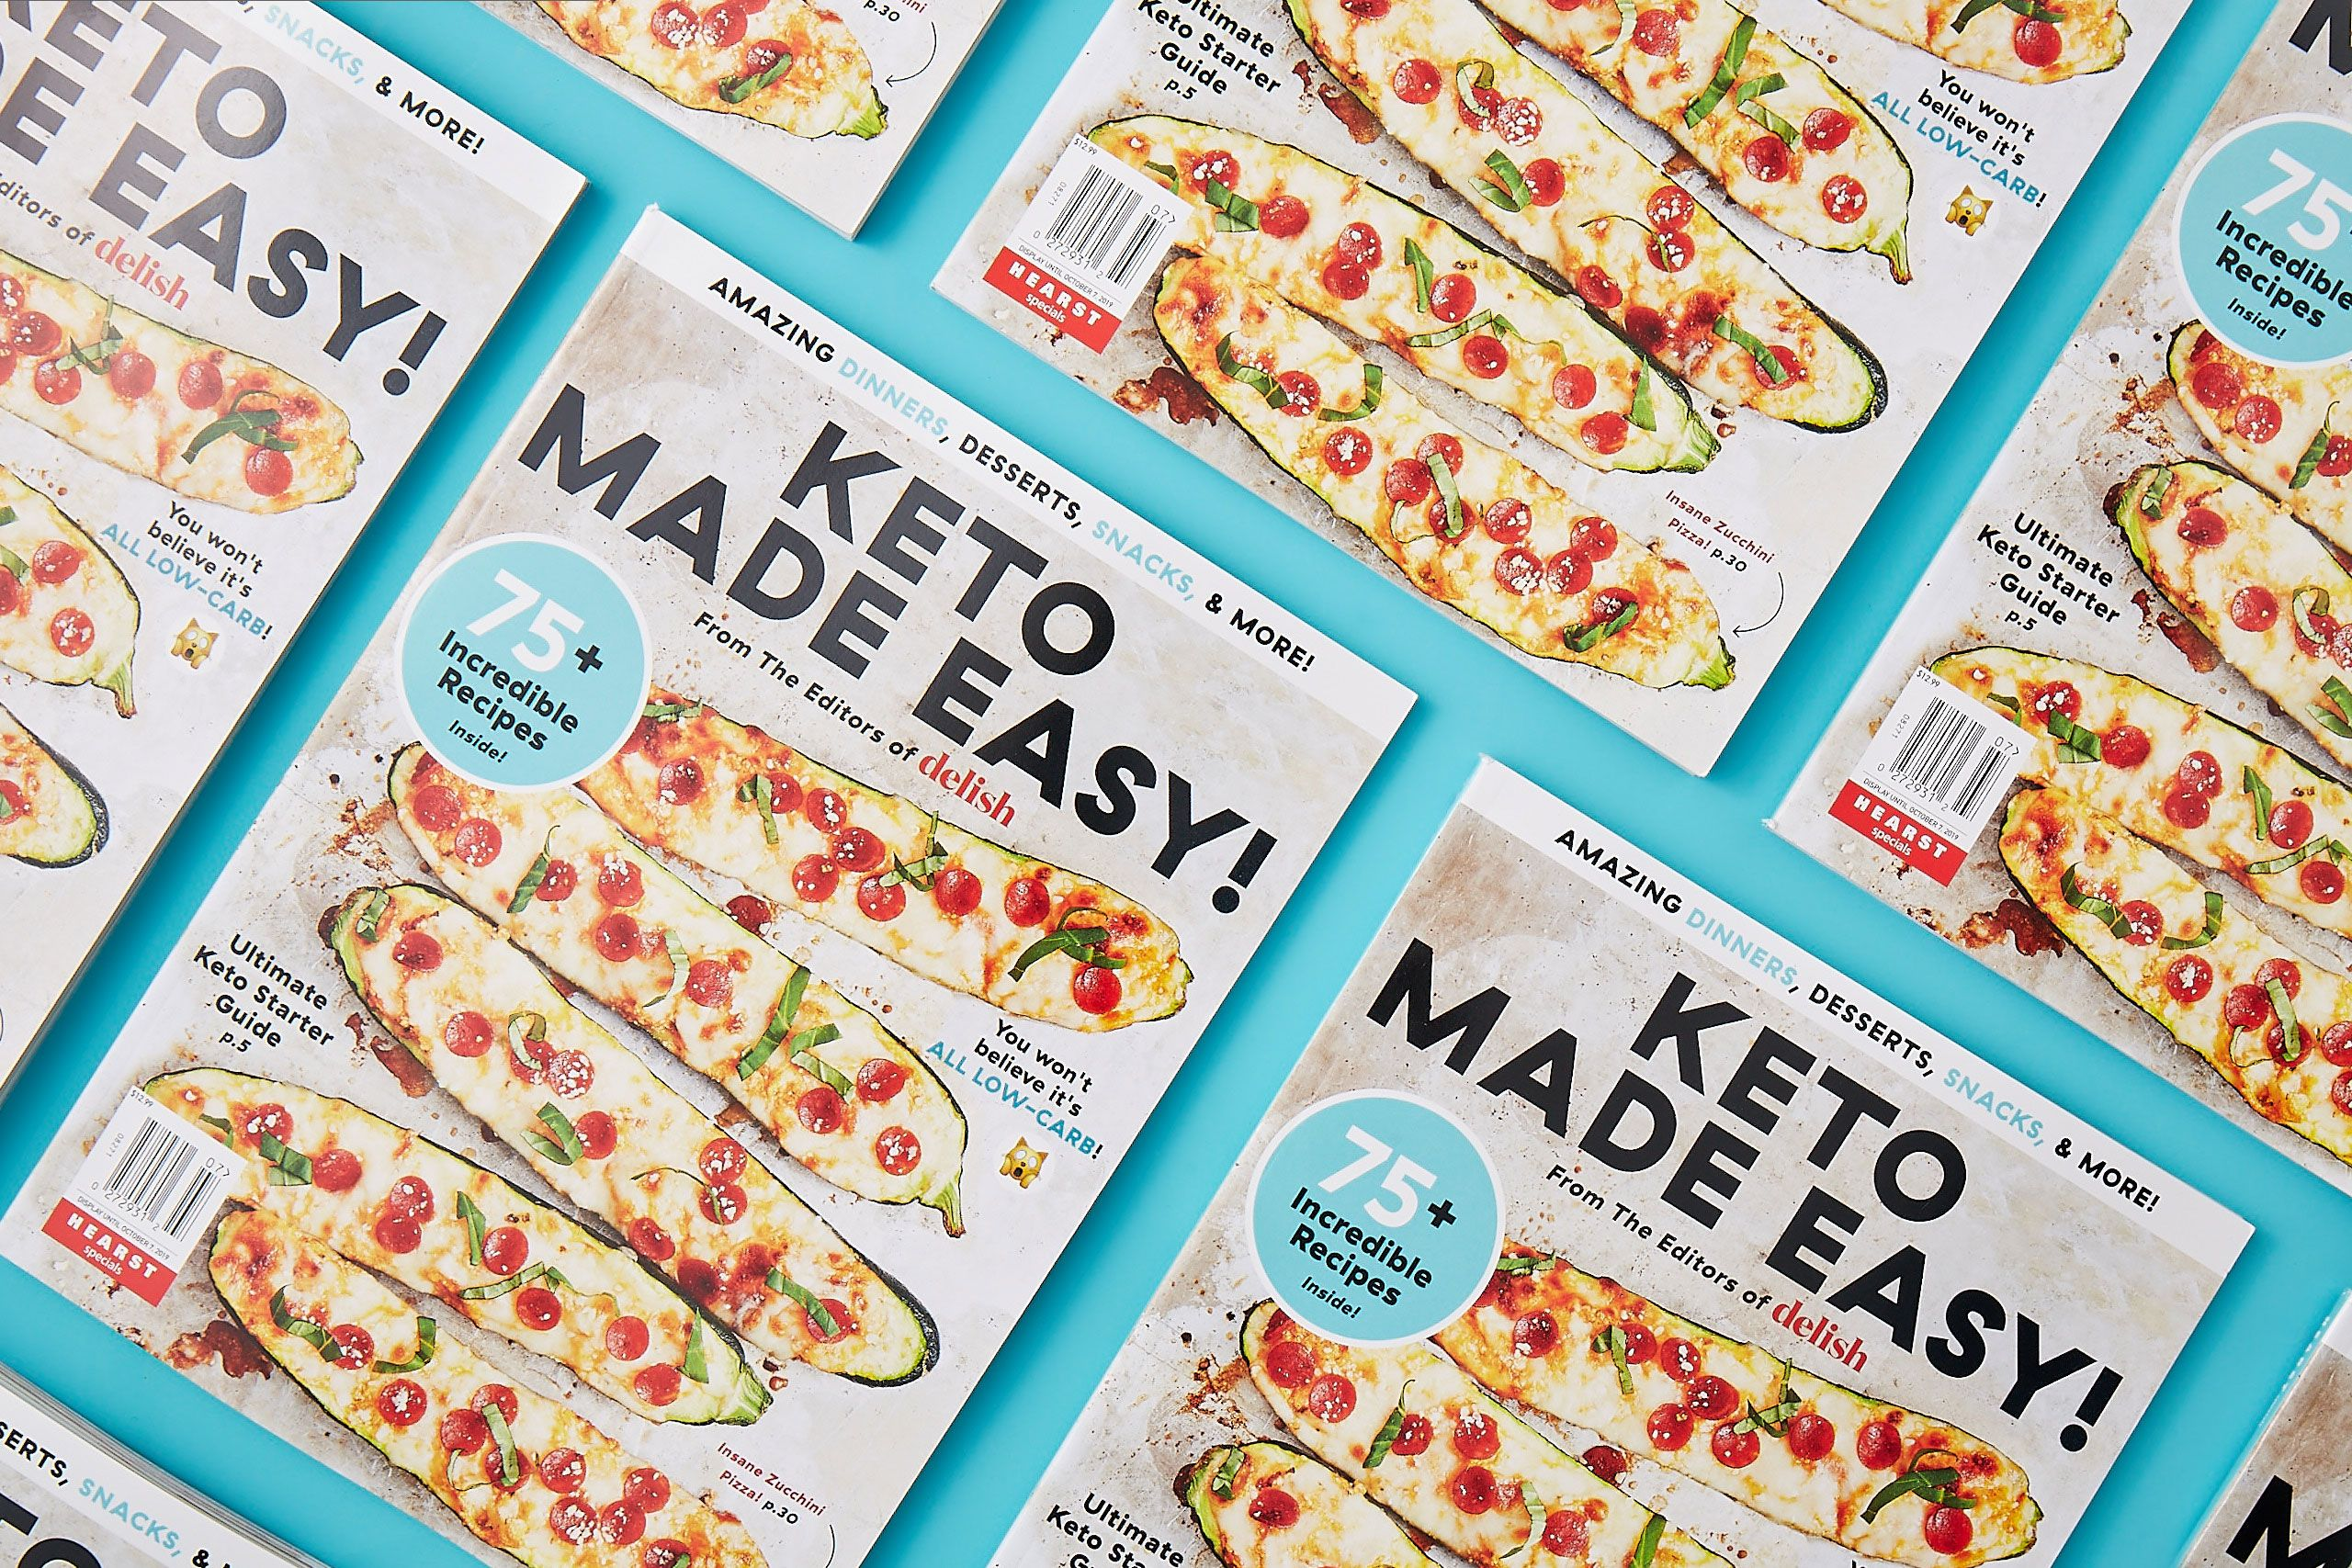 If You're Going Low-Carb, You Need Our New Easy Keto Bookazine